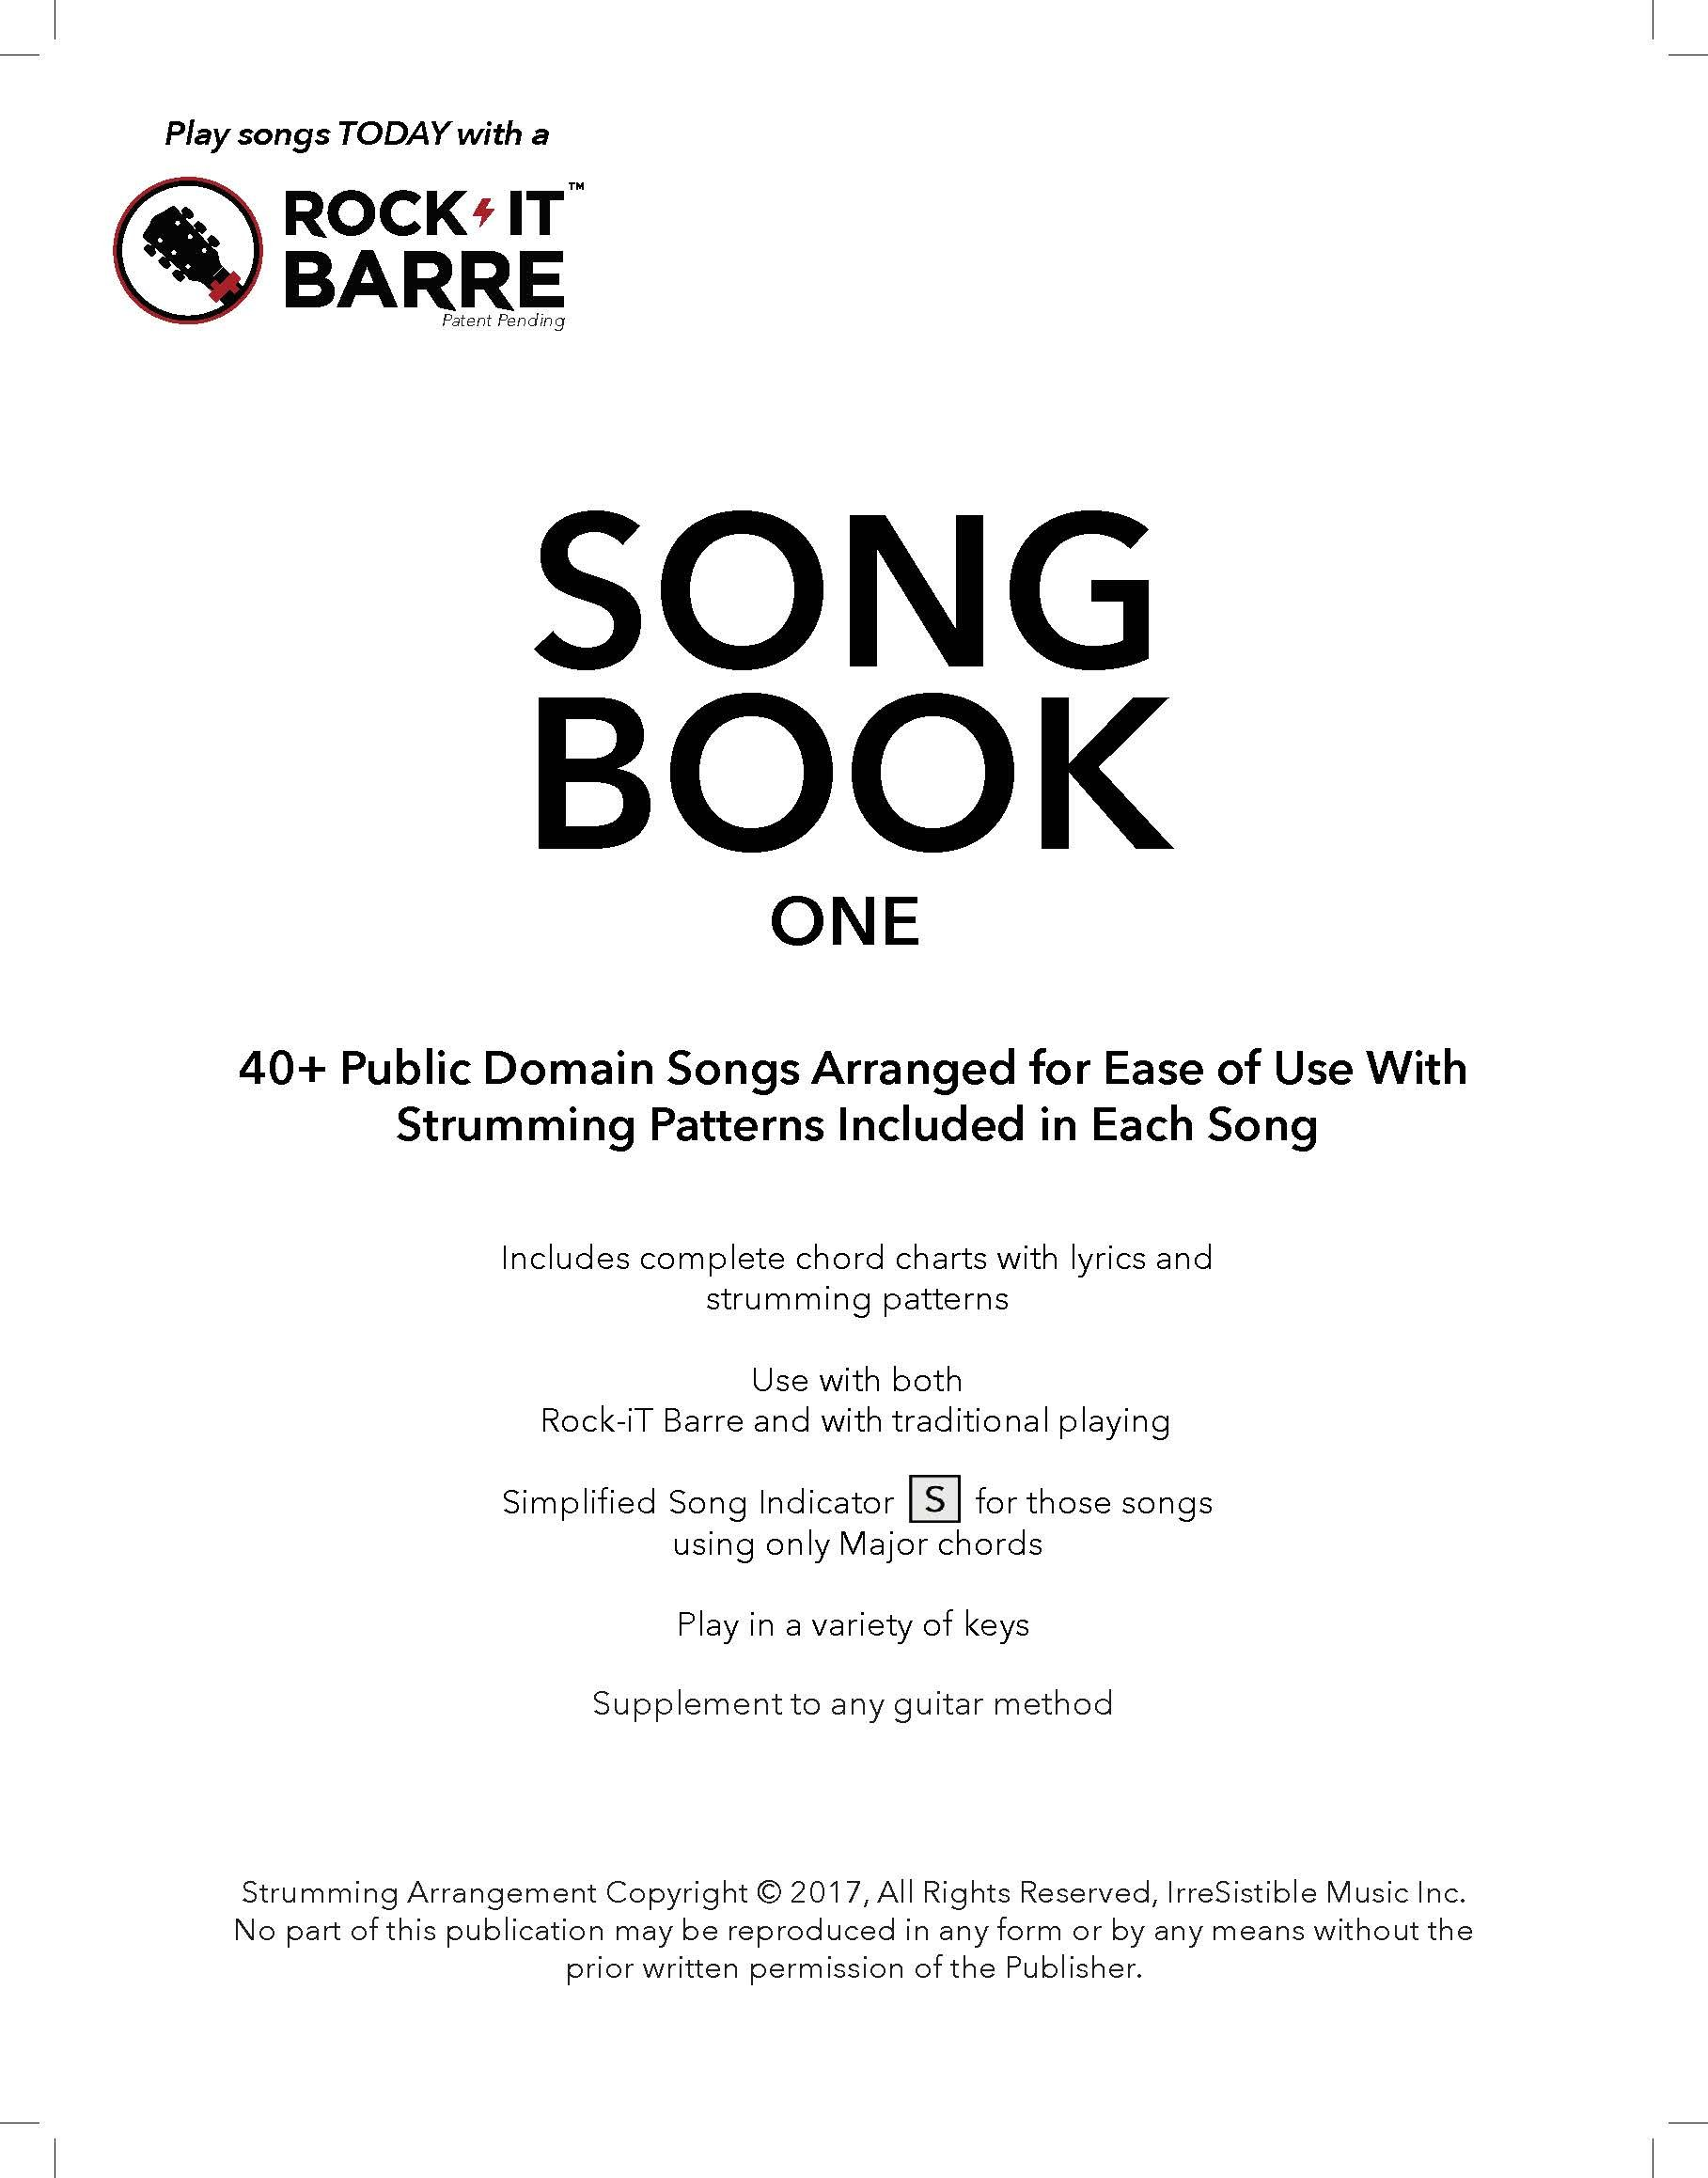 Rock It Barre Song Book One With Over 40 Public Domain Songs Using